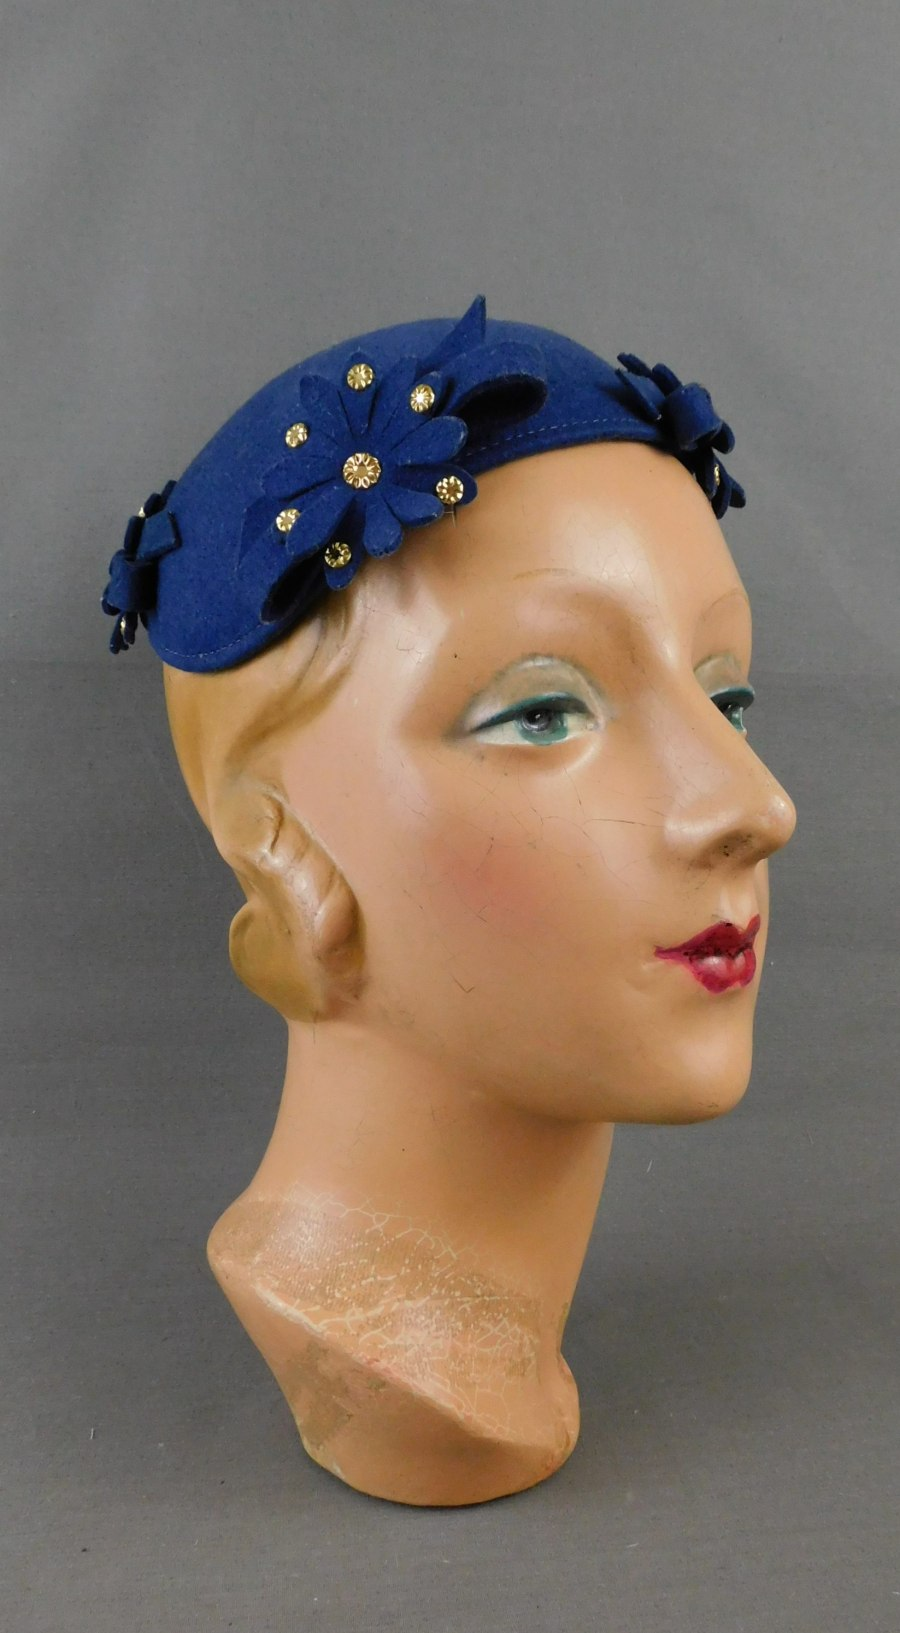 Vintage 1930s Blue Felt Hat with Flowers and Gold Studs